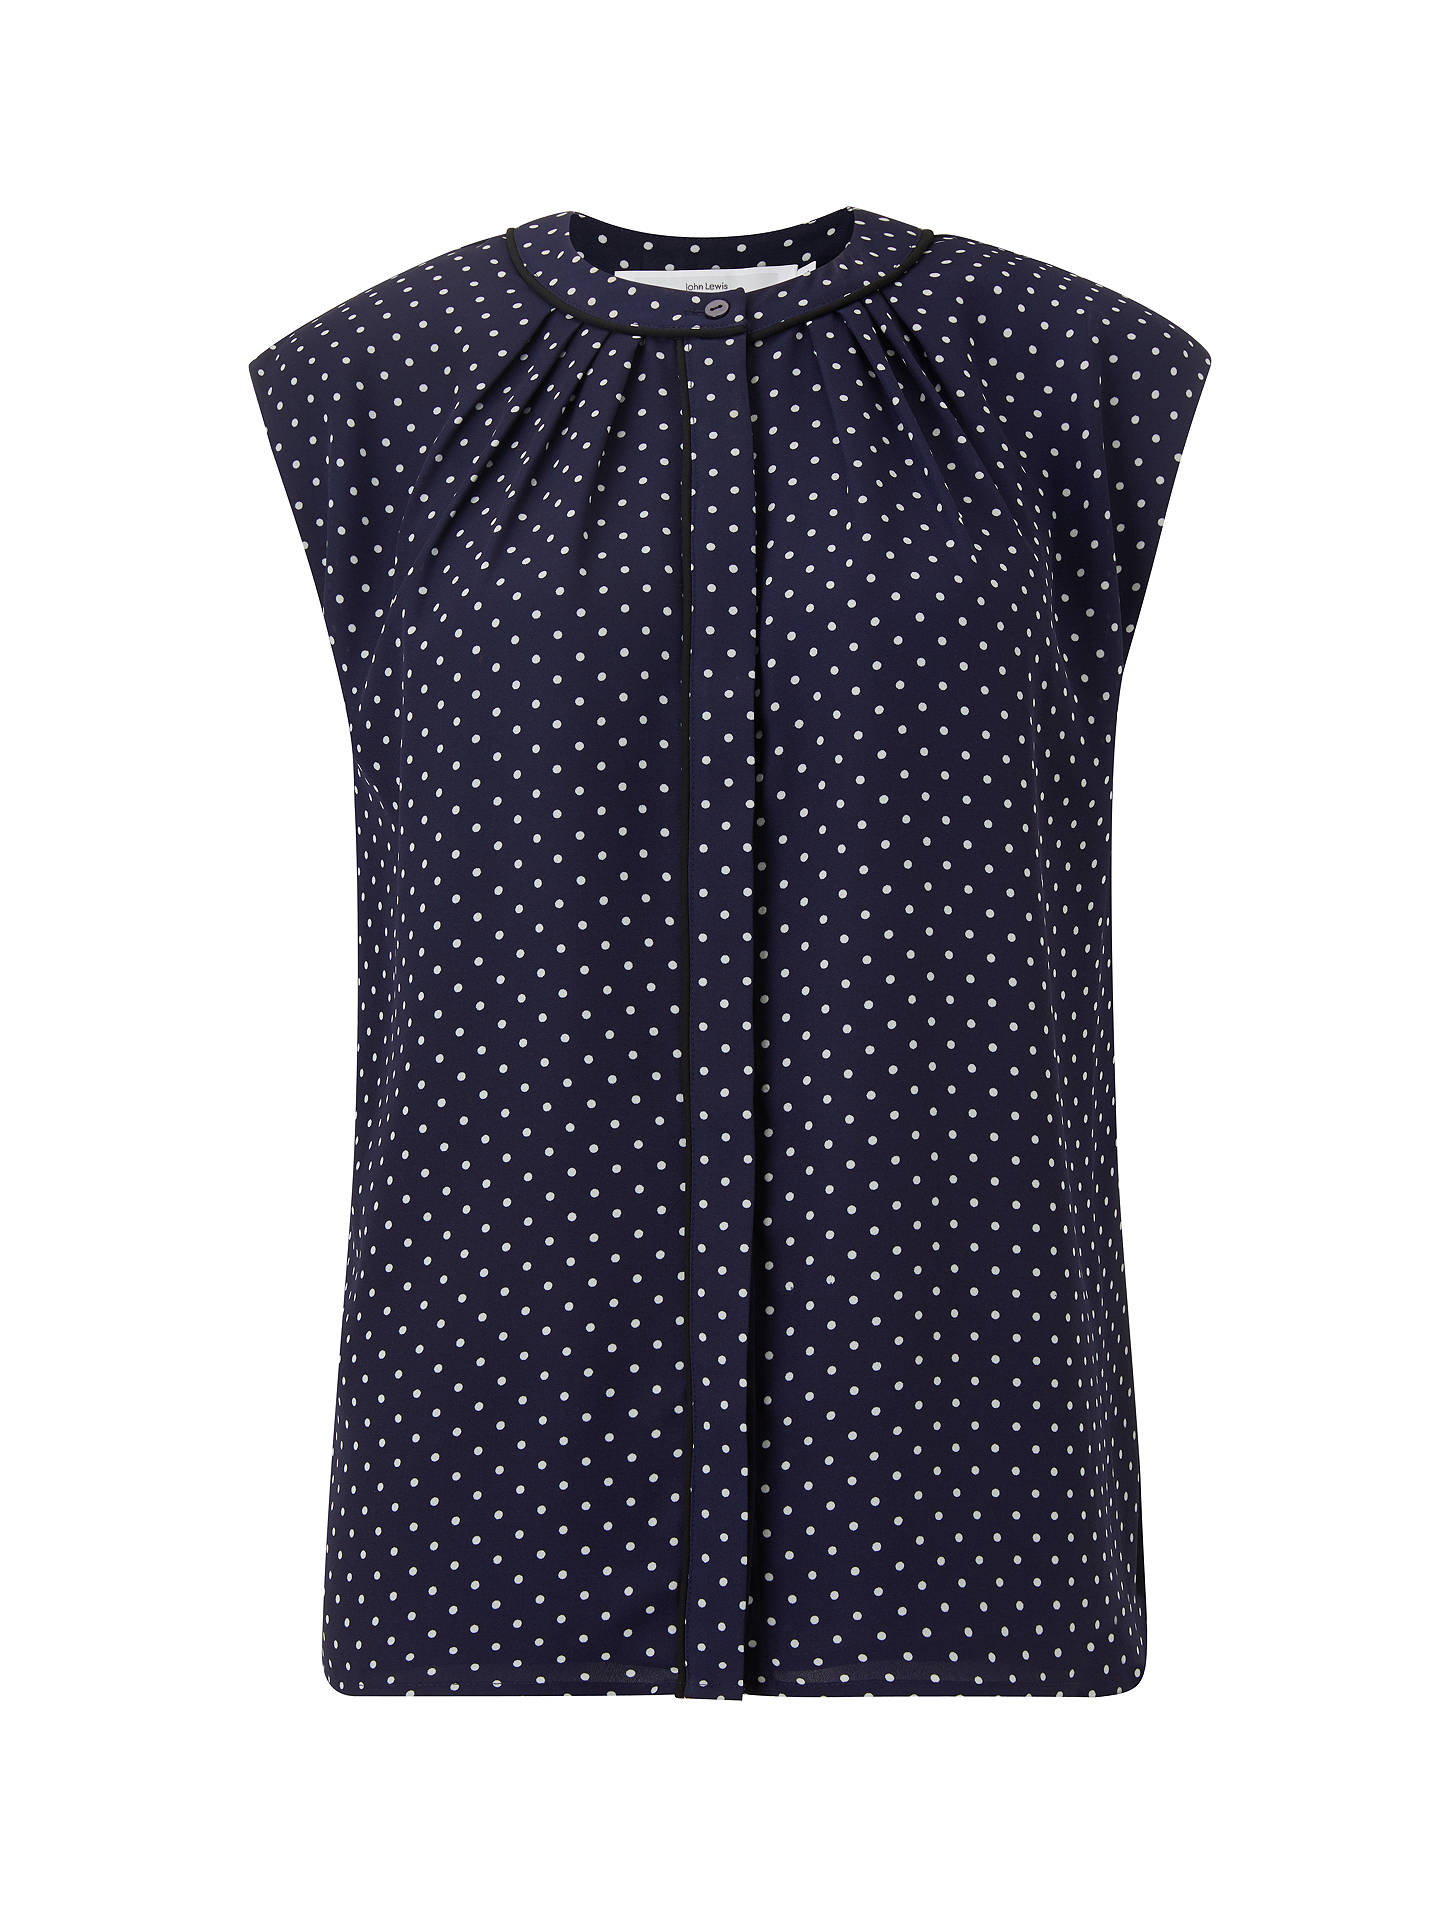 BuyJohn Lewis & Partners Lucienne Pin Dot Blouse, Navy, 8 Online at johnlewis.com